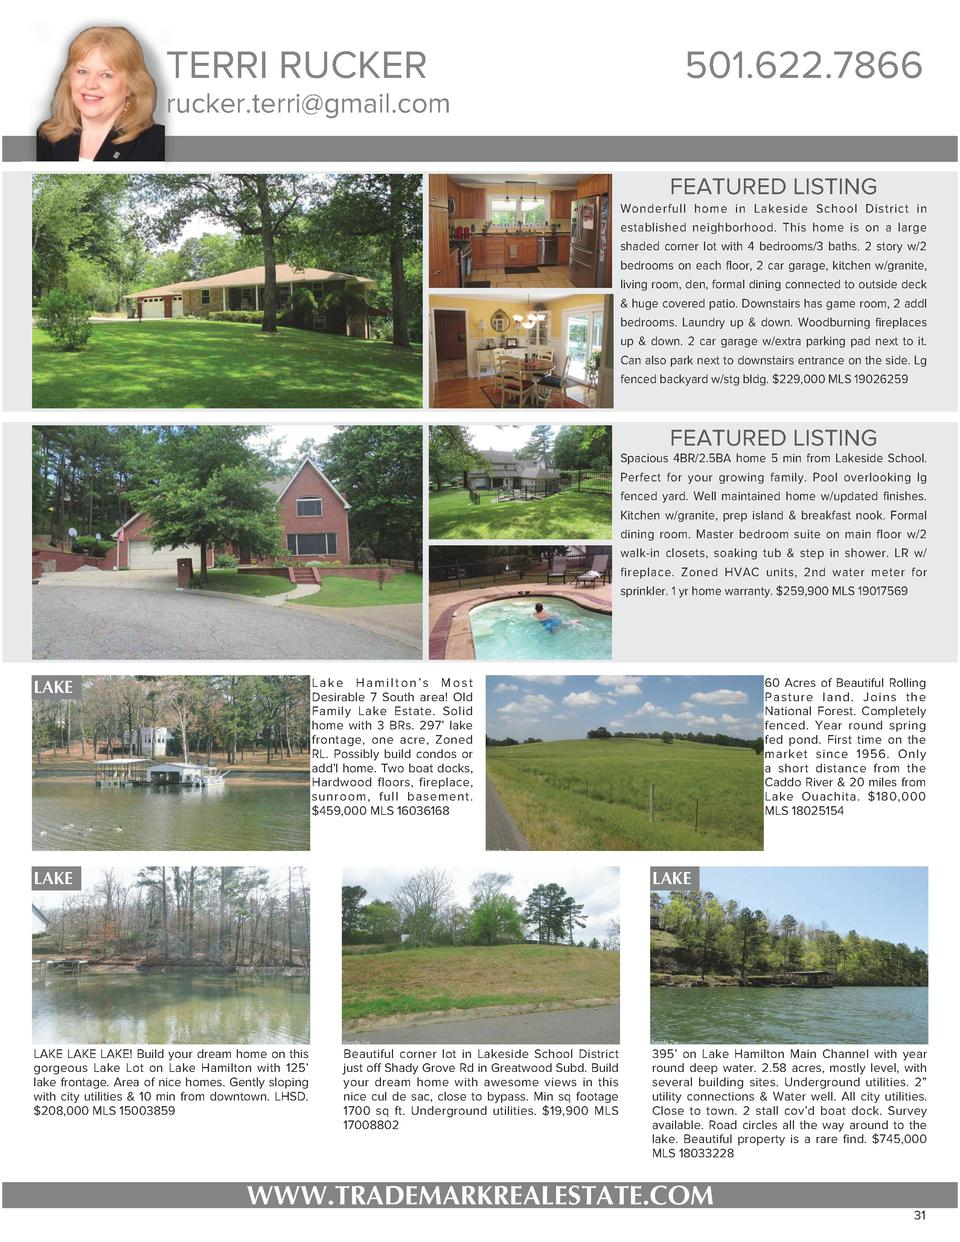 TERRI RUCKER  rucker.terri gmail.com  501.622.7866 FEATURED LISTING Wonderfull home in Lakeside School District in establi...